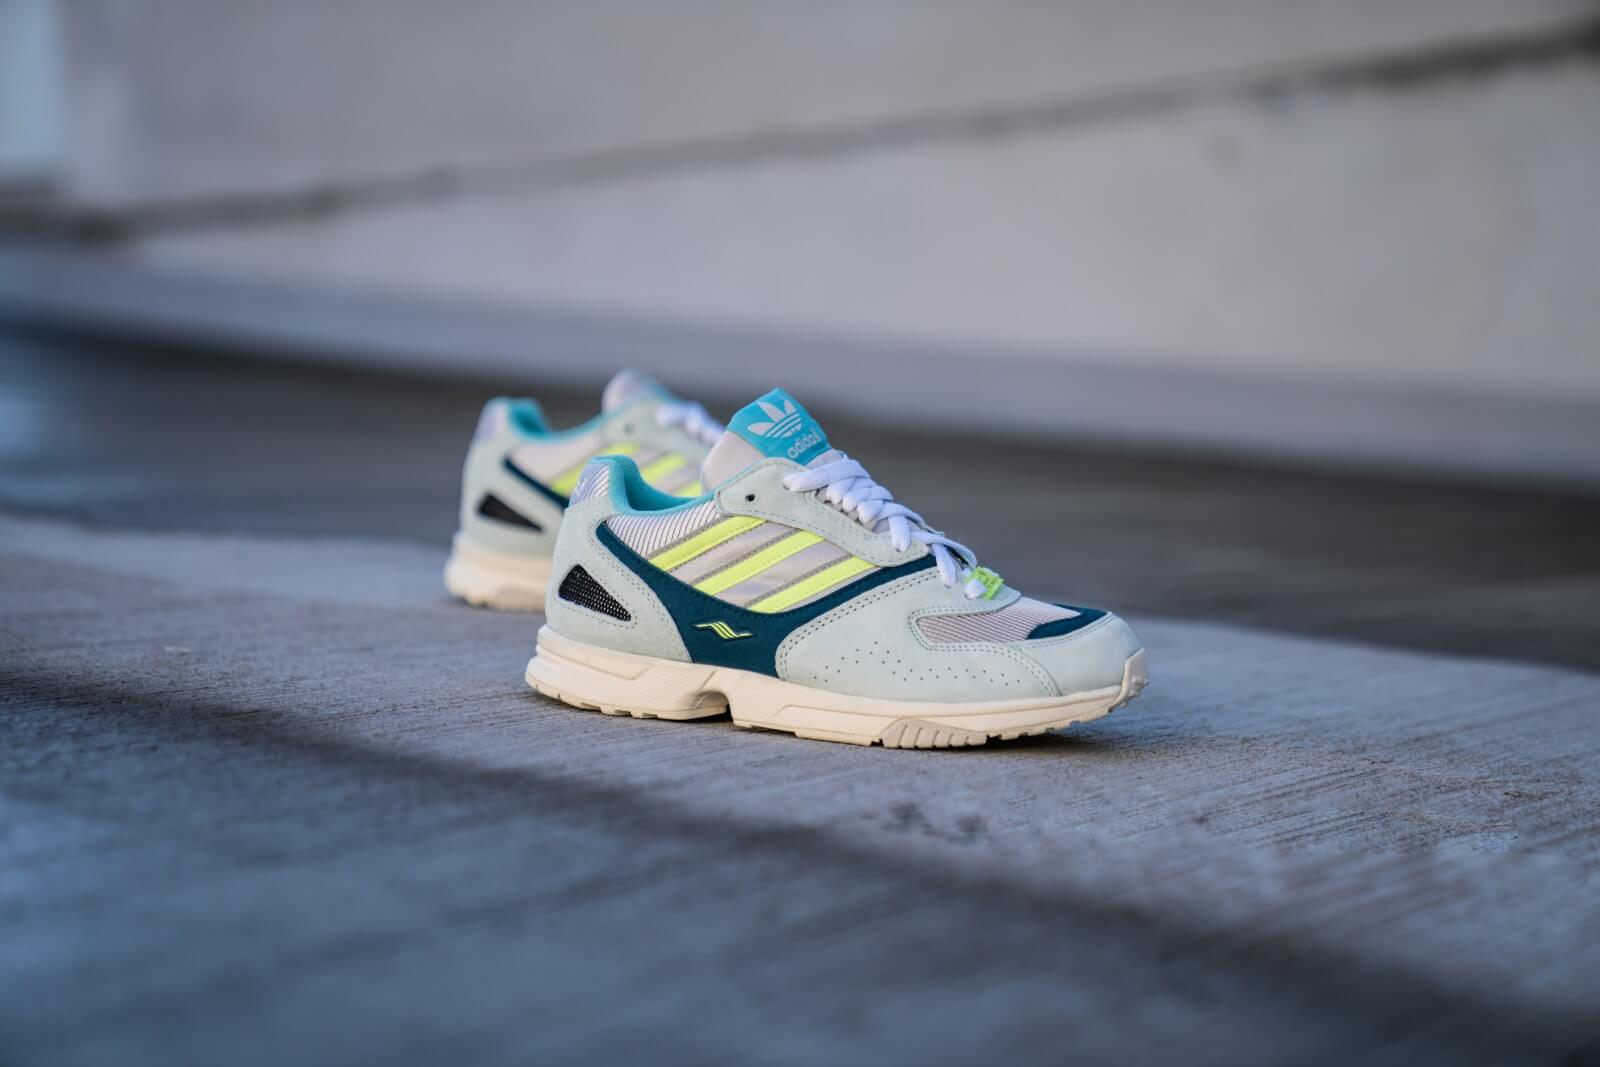 ZX 4000 Shoes Ice Mint Womens in 2020   Shoes, Adidas zx